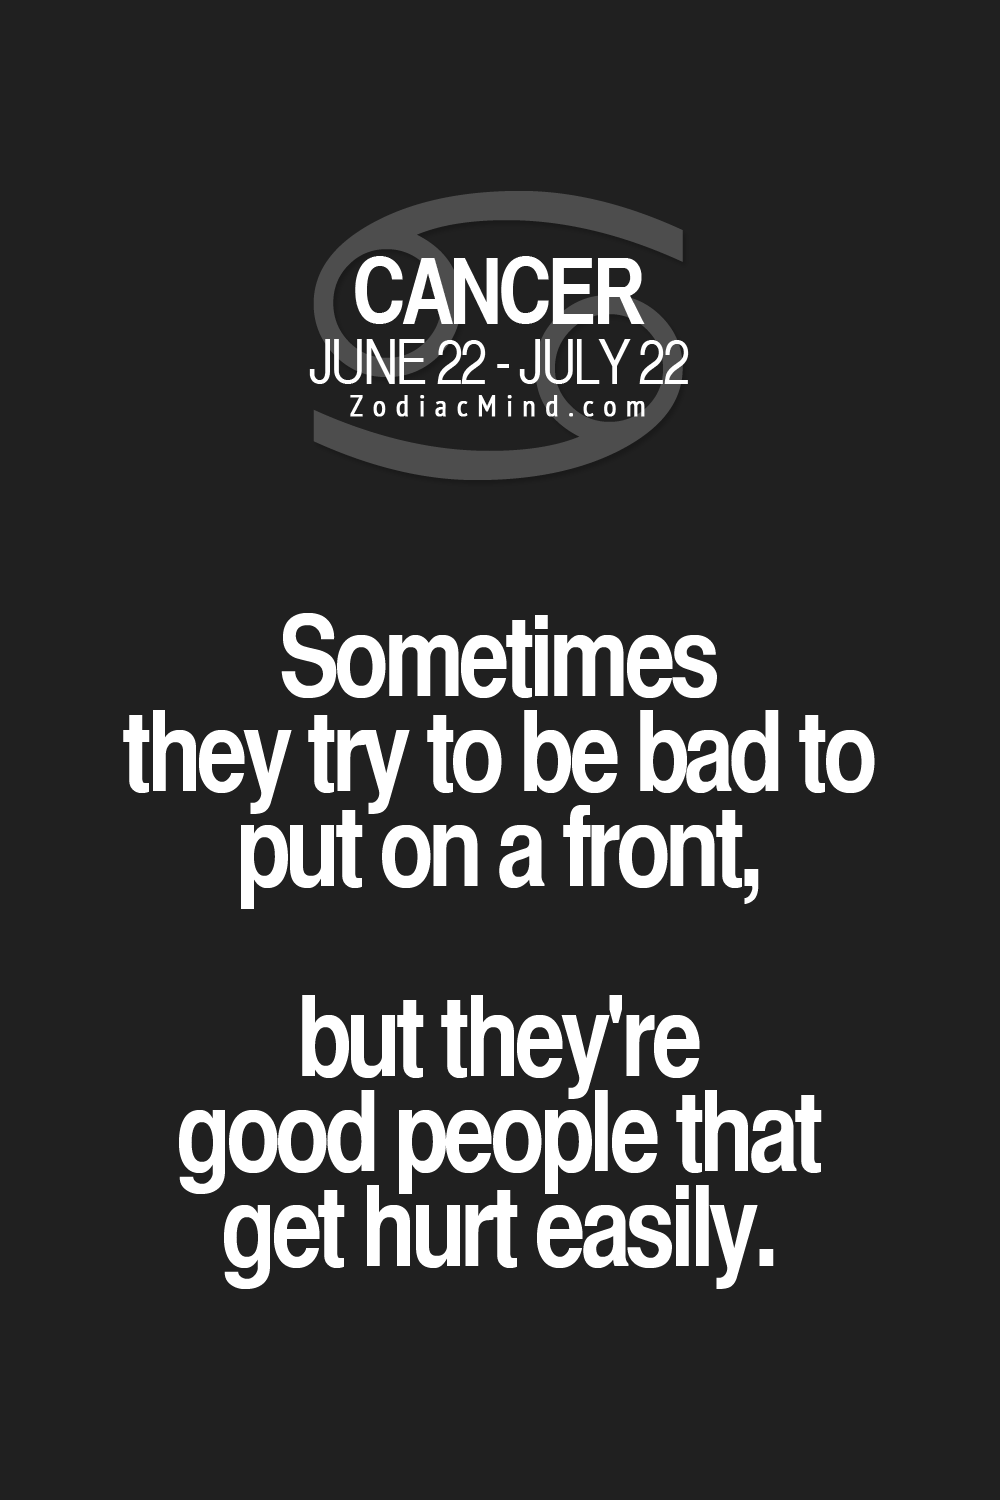 Sometimes they try to be bad to put on a front, but they're good people that get hurt easily.